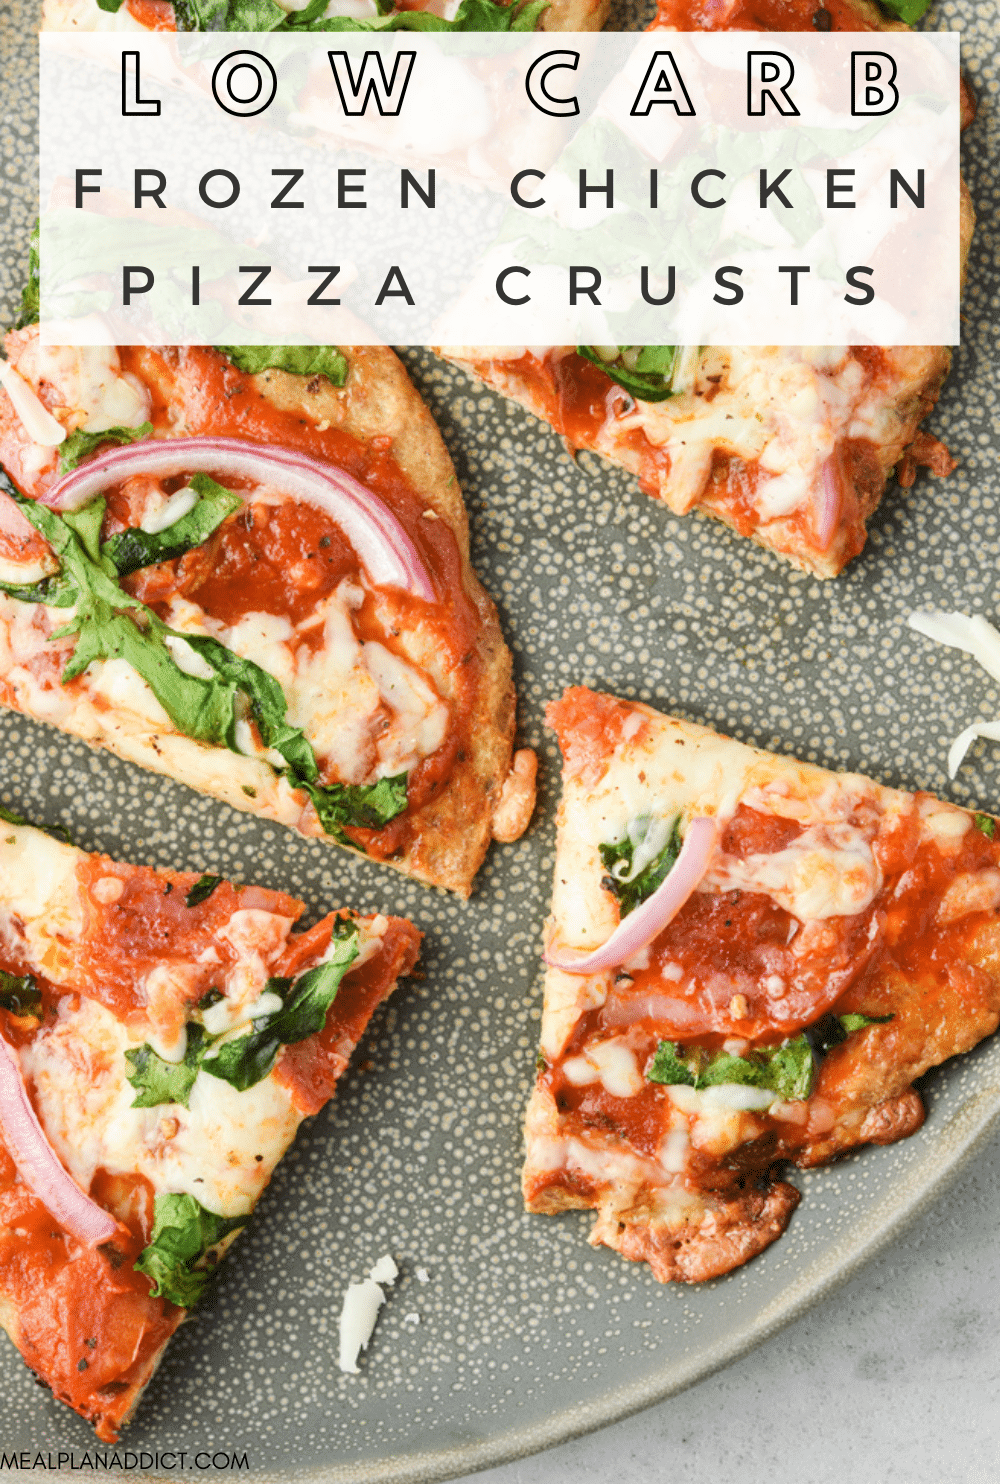 Low carb pizza crust pin for Pinterest